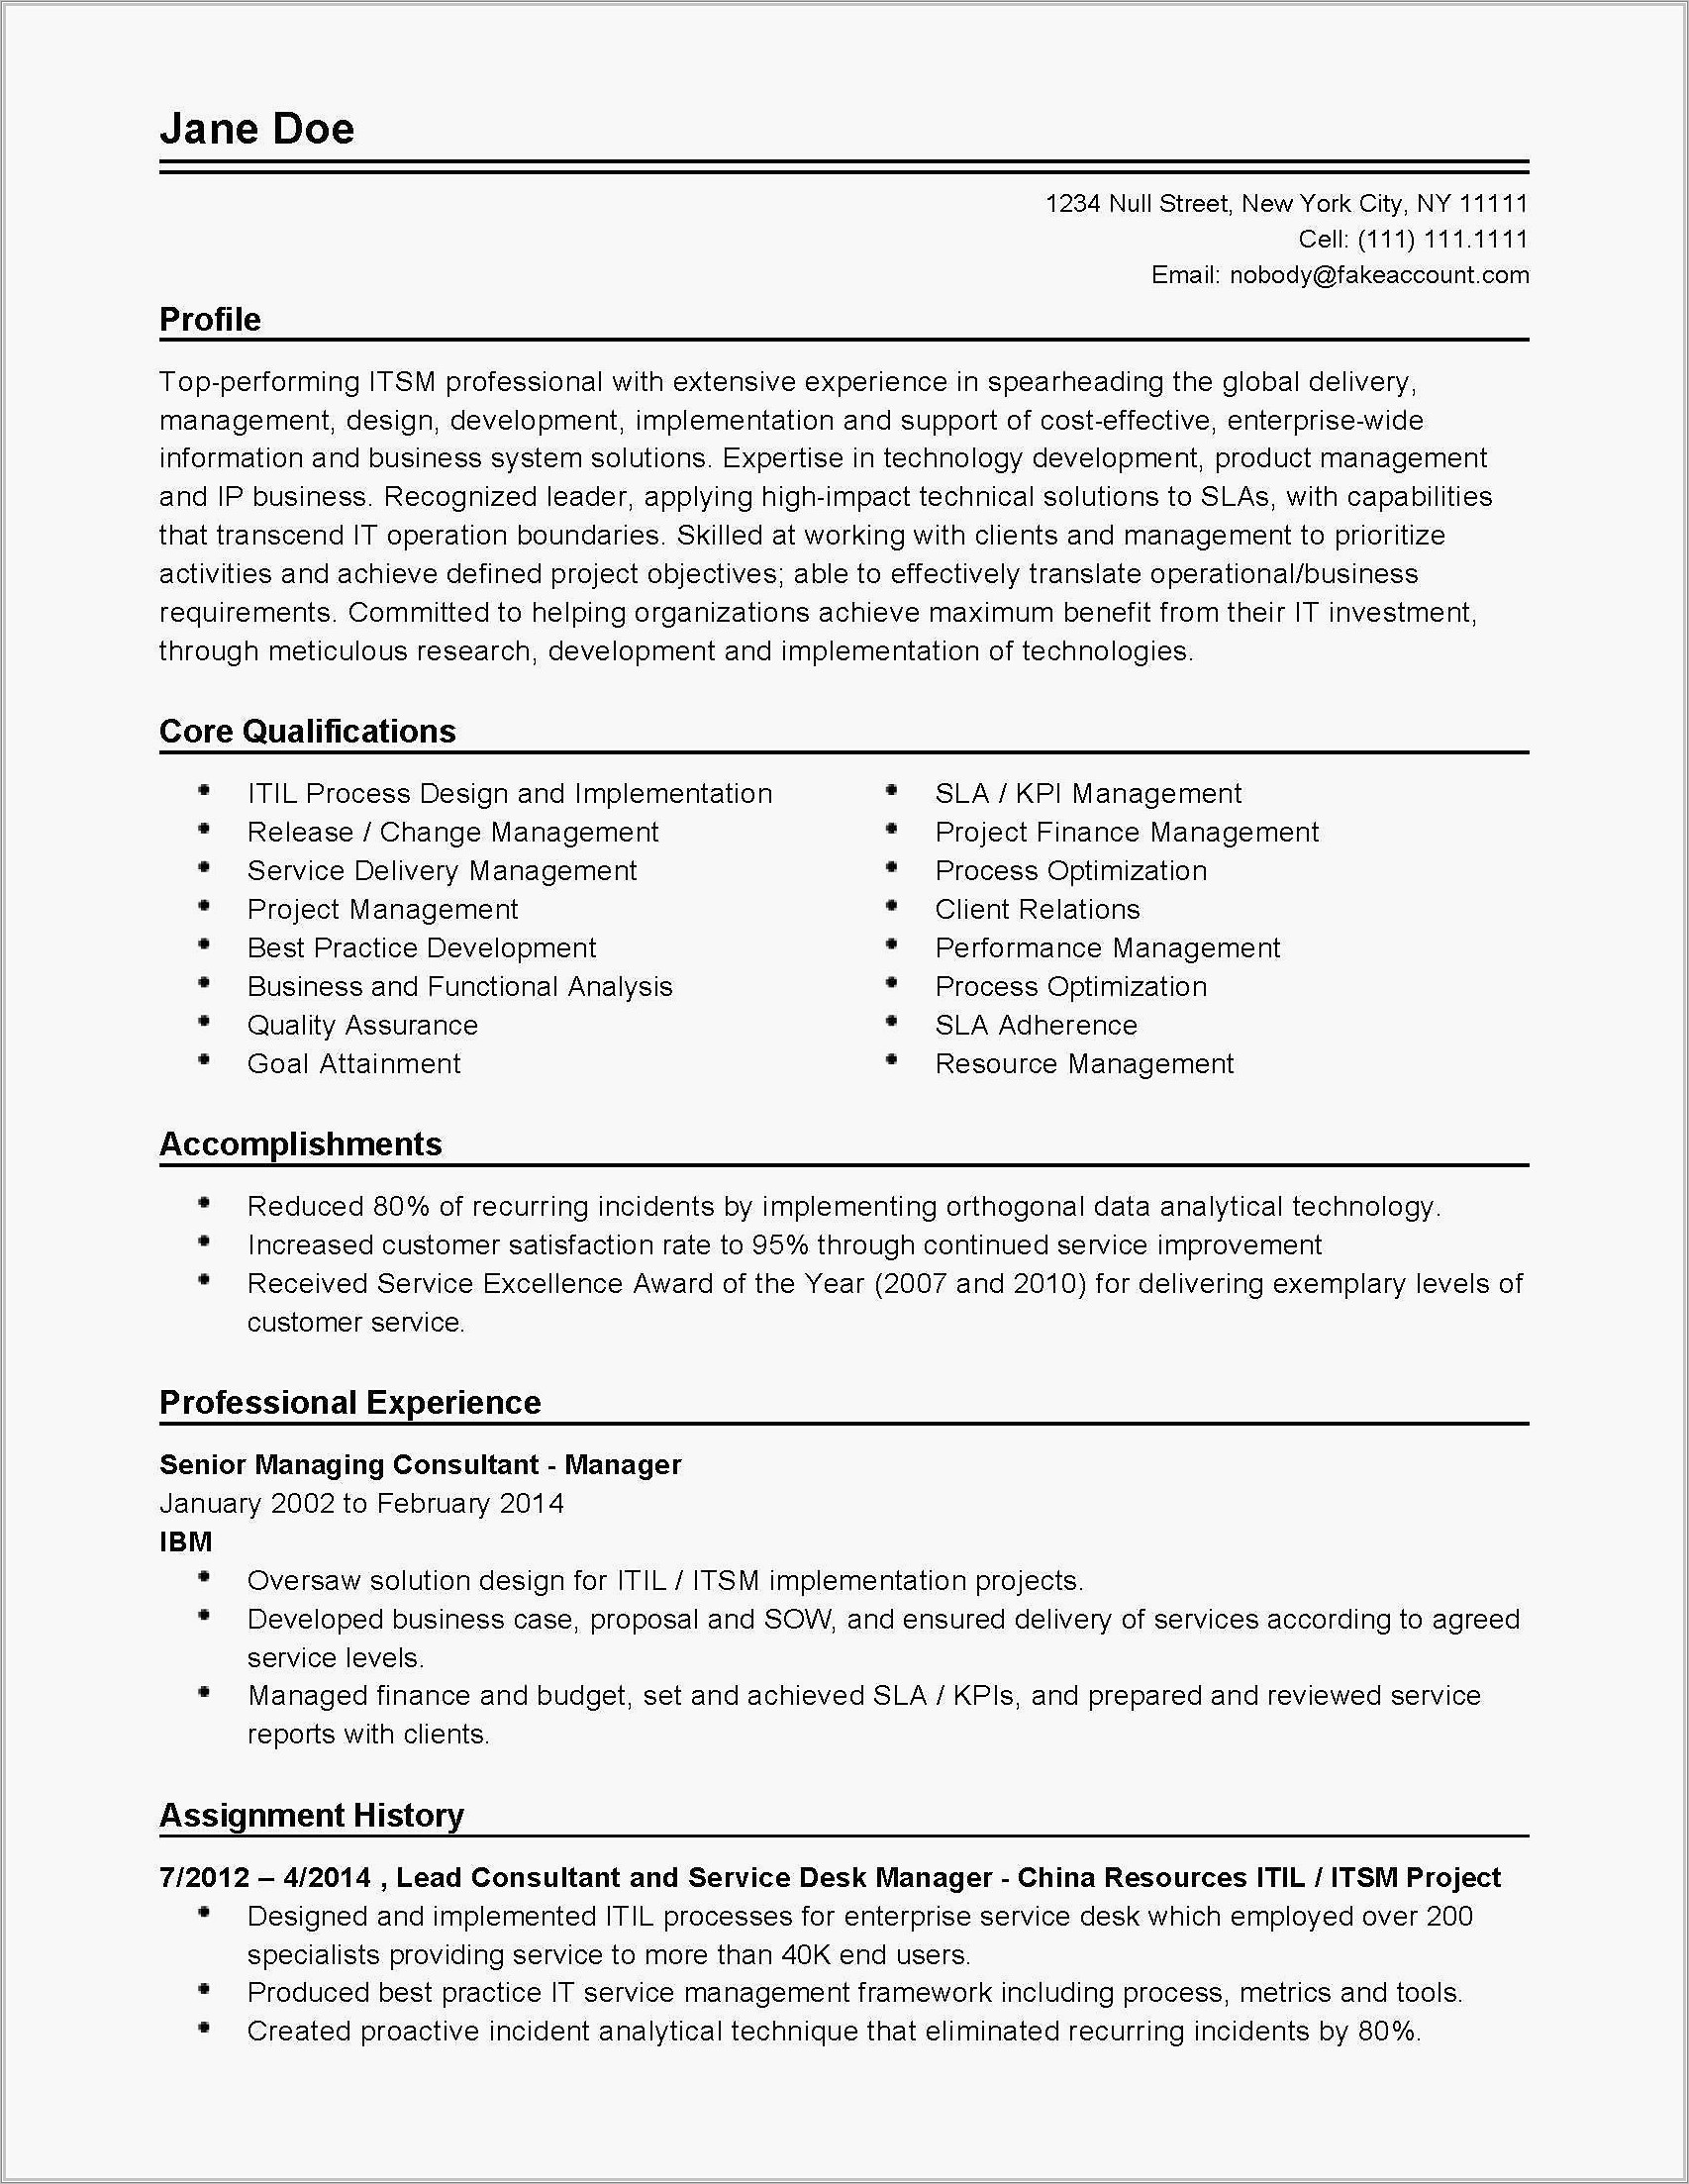 Professional Resume Template In Word 2007